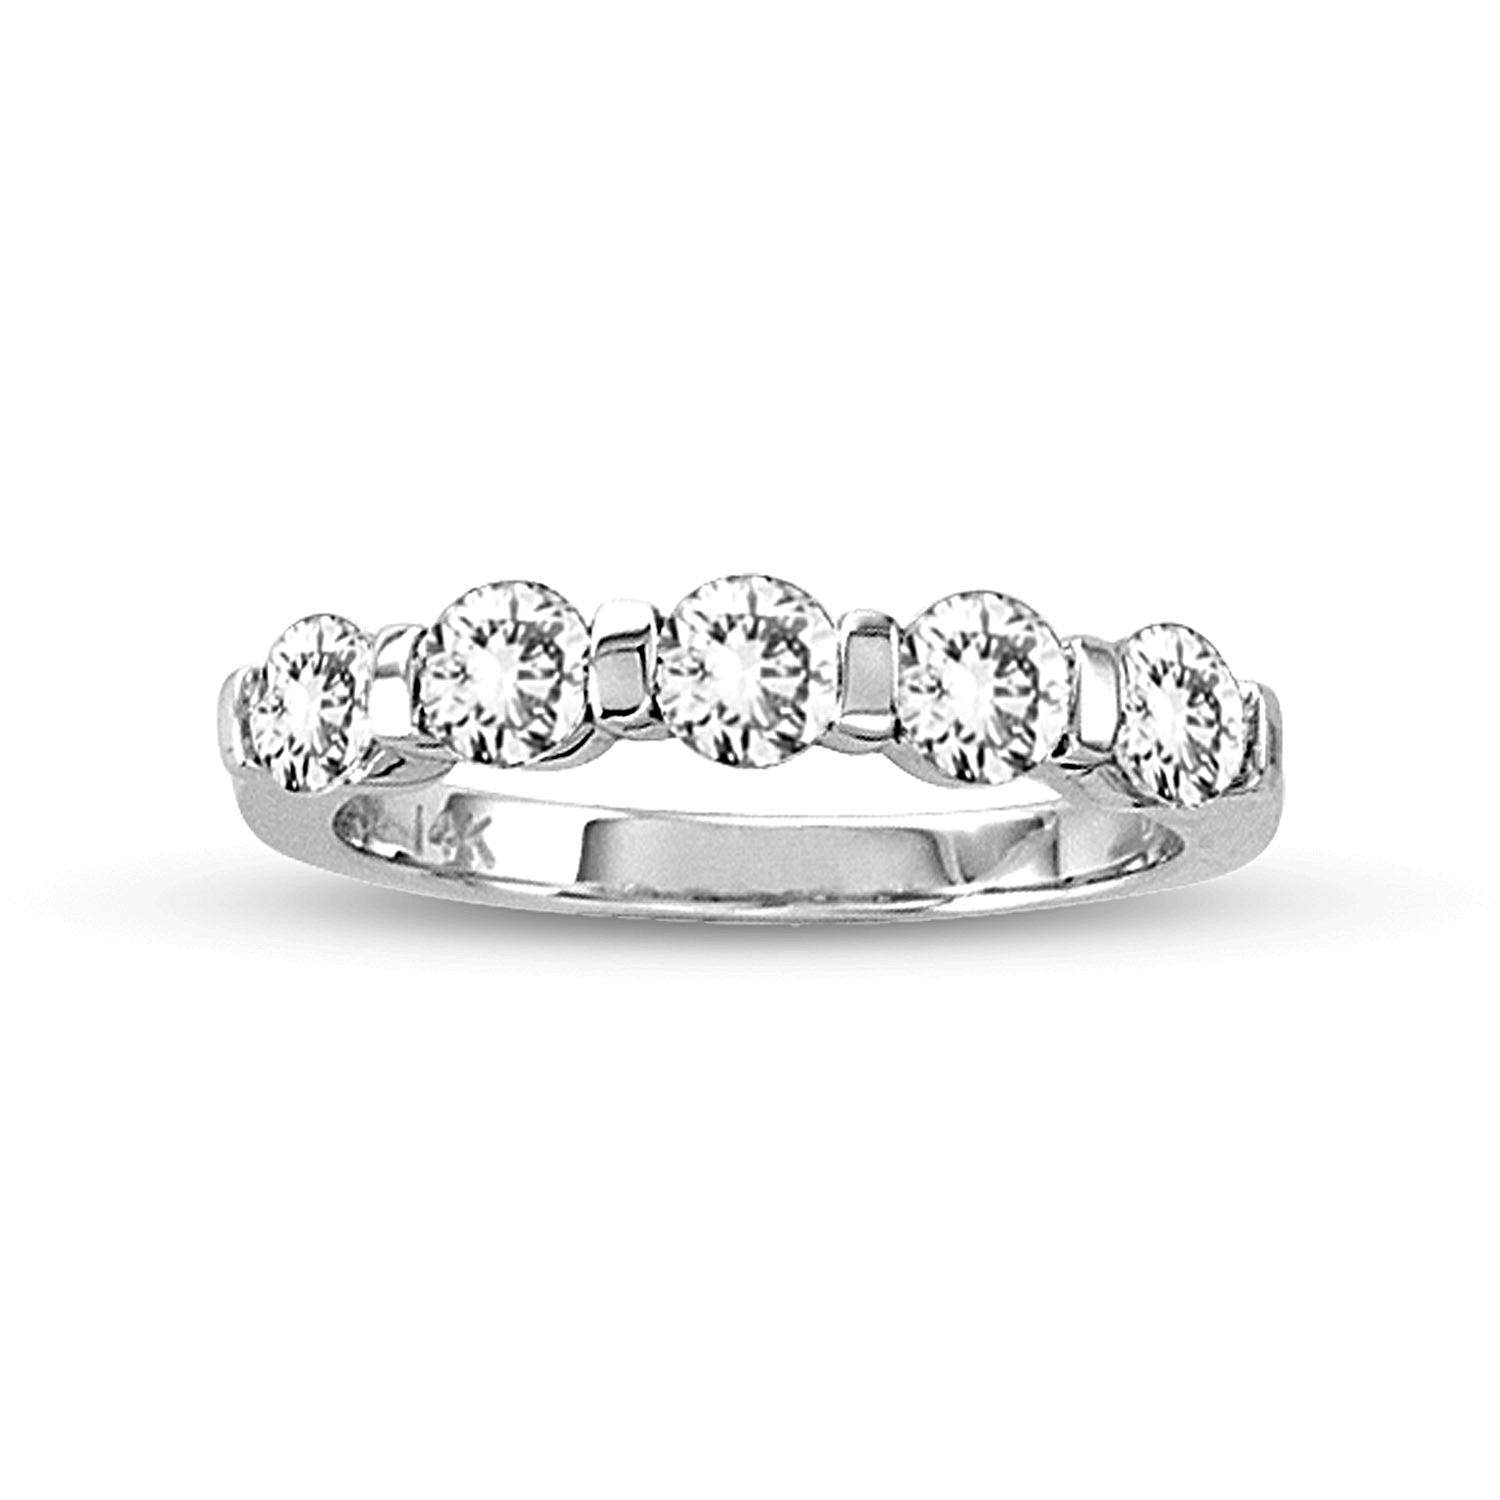 stone engagement bands shared in band at u wedding published prong november diamond shaped liloveve